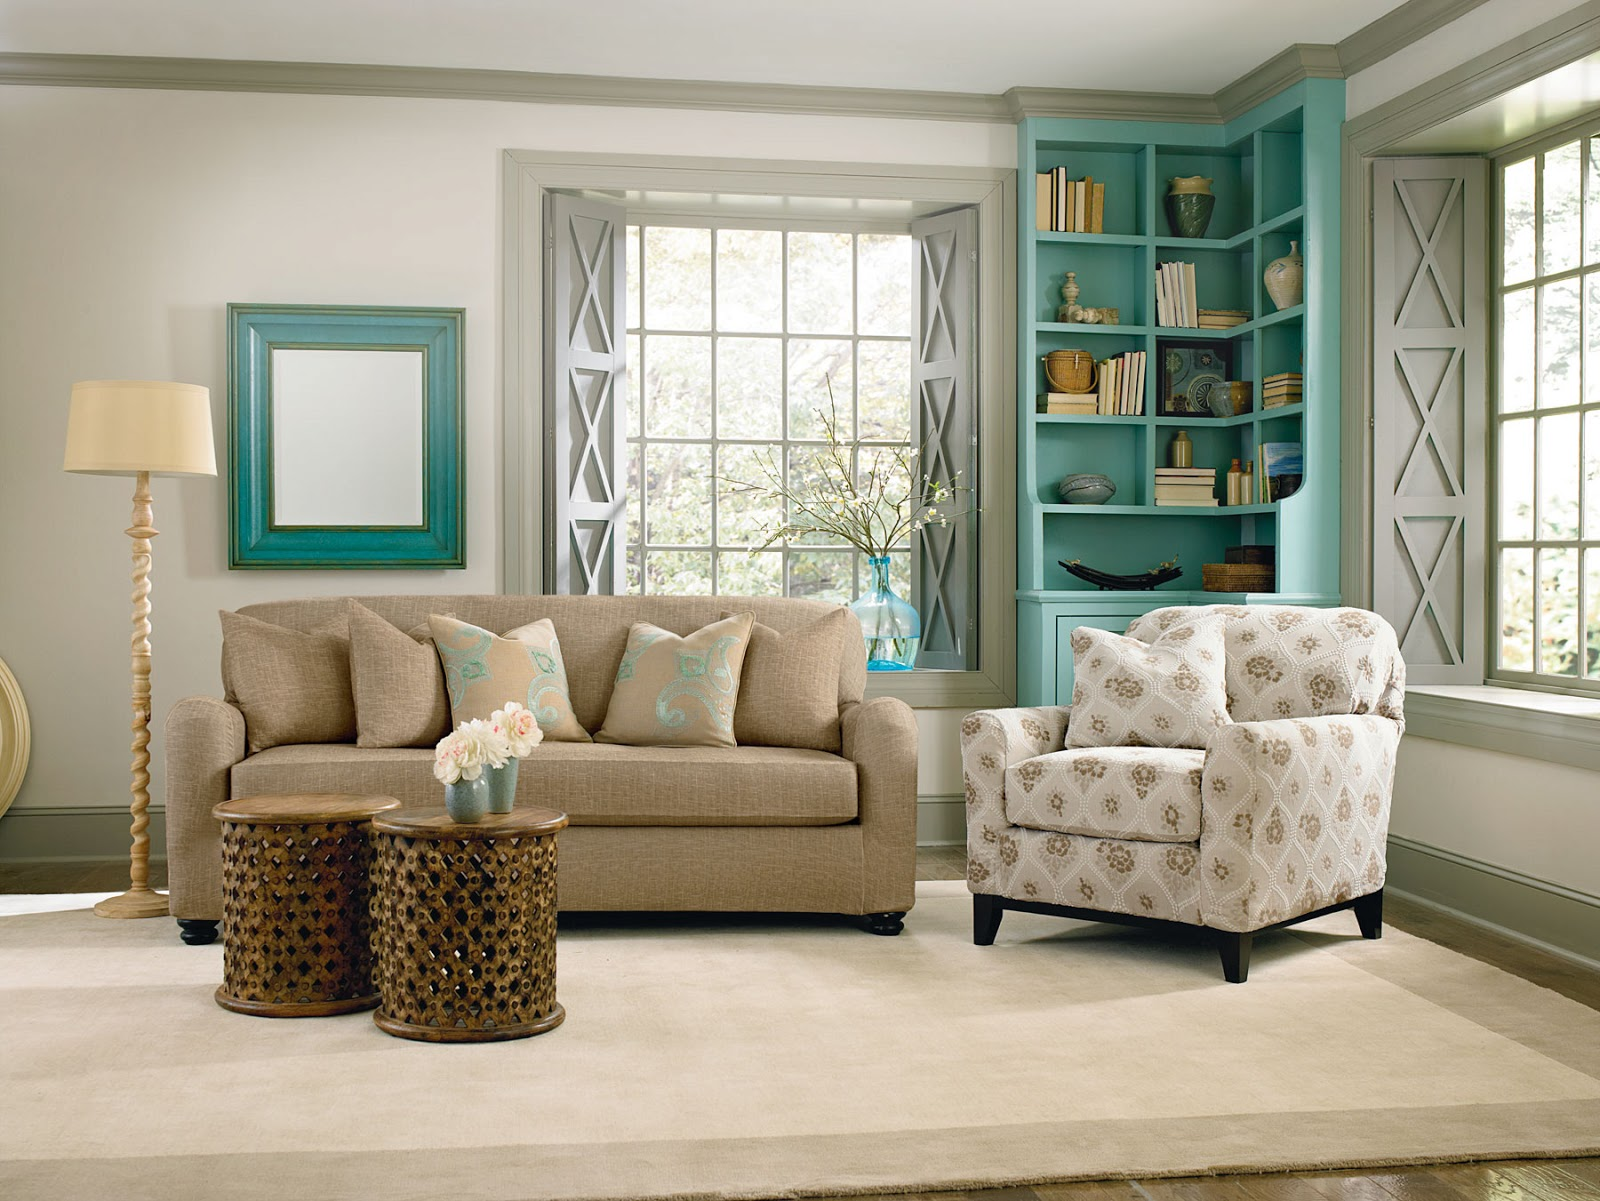 Solid Color Or Patterns- What Is Better For Your Furniture?